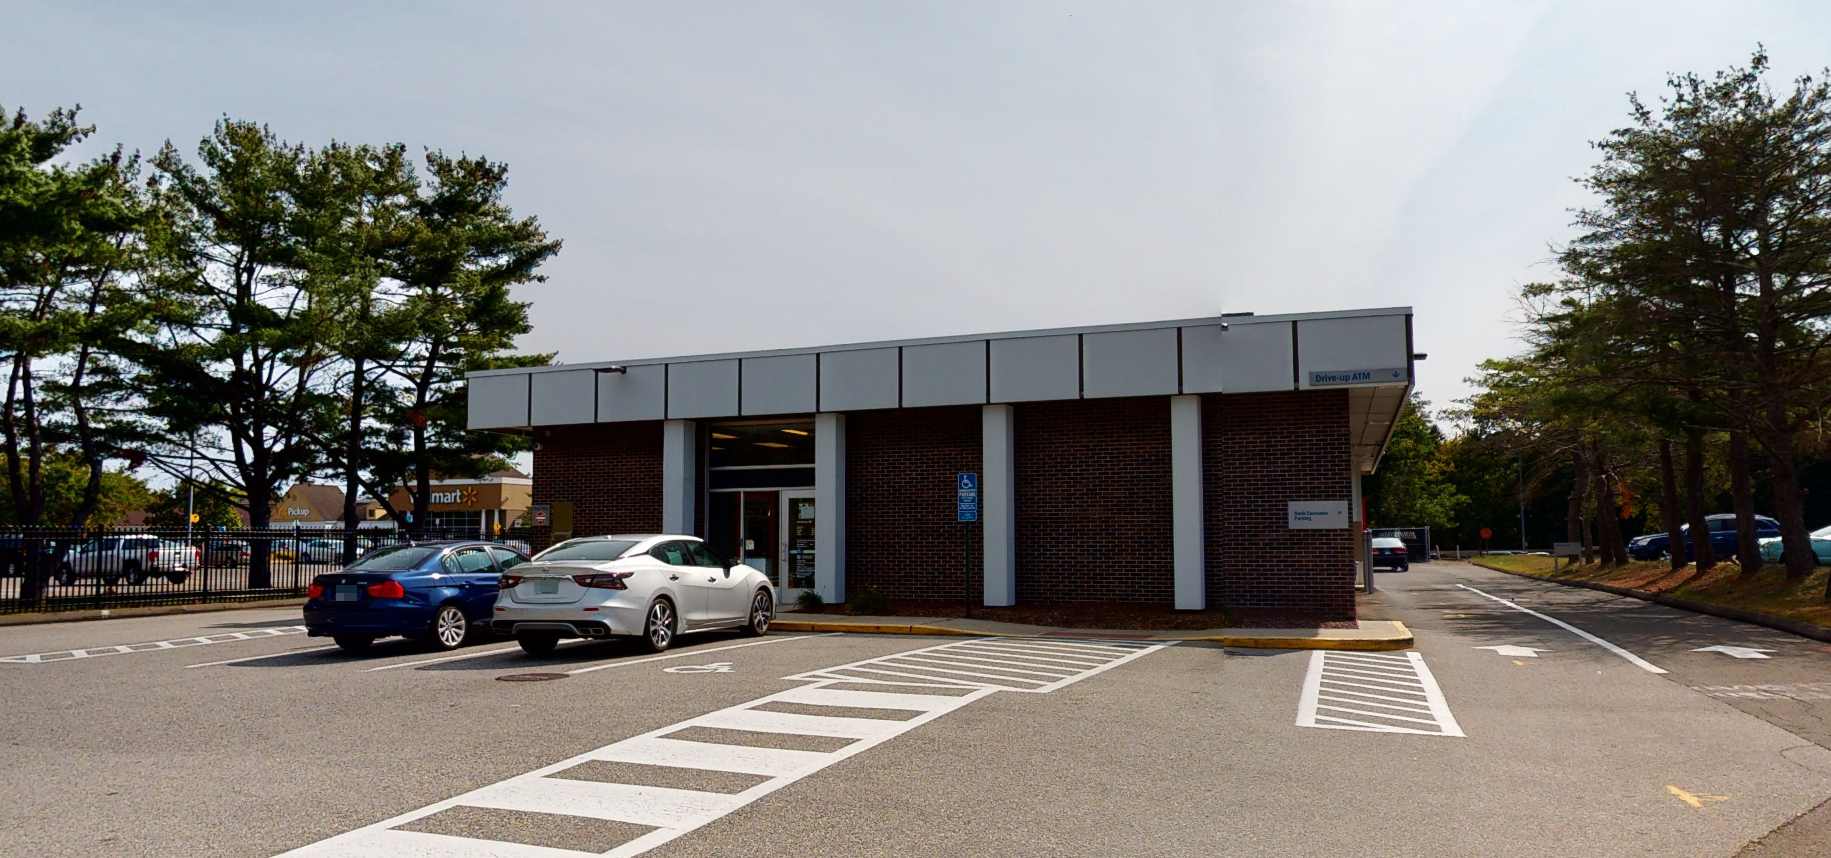 Bank of America financial center with drive-thru ATM | 916 Boston Post Rd, Guilford, CT 06437